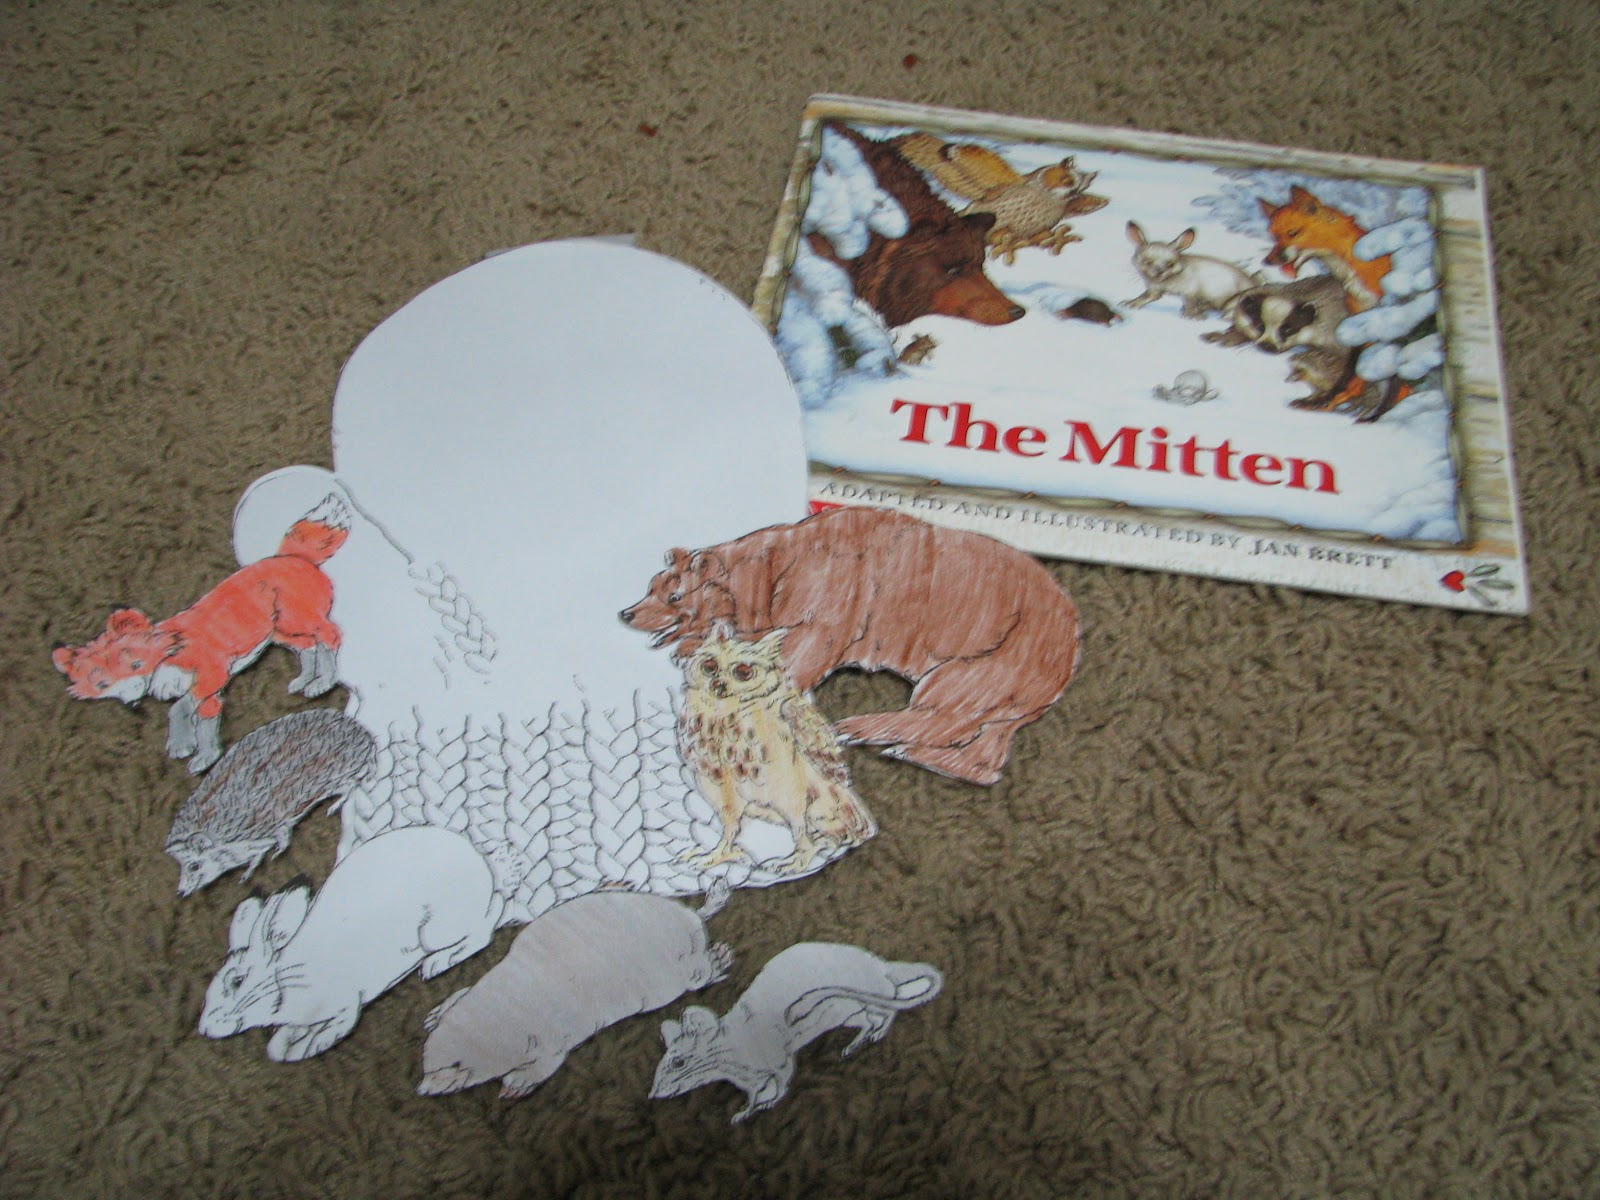 It's just an image of Stupendous The Mitten Jan Brett Activities